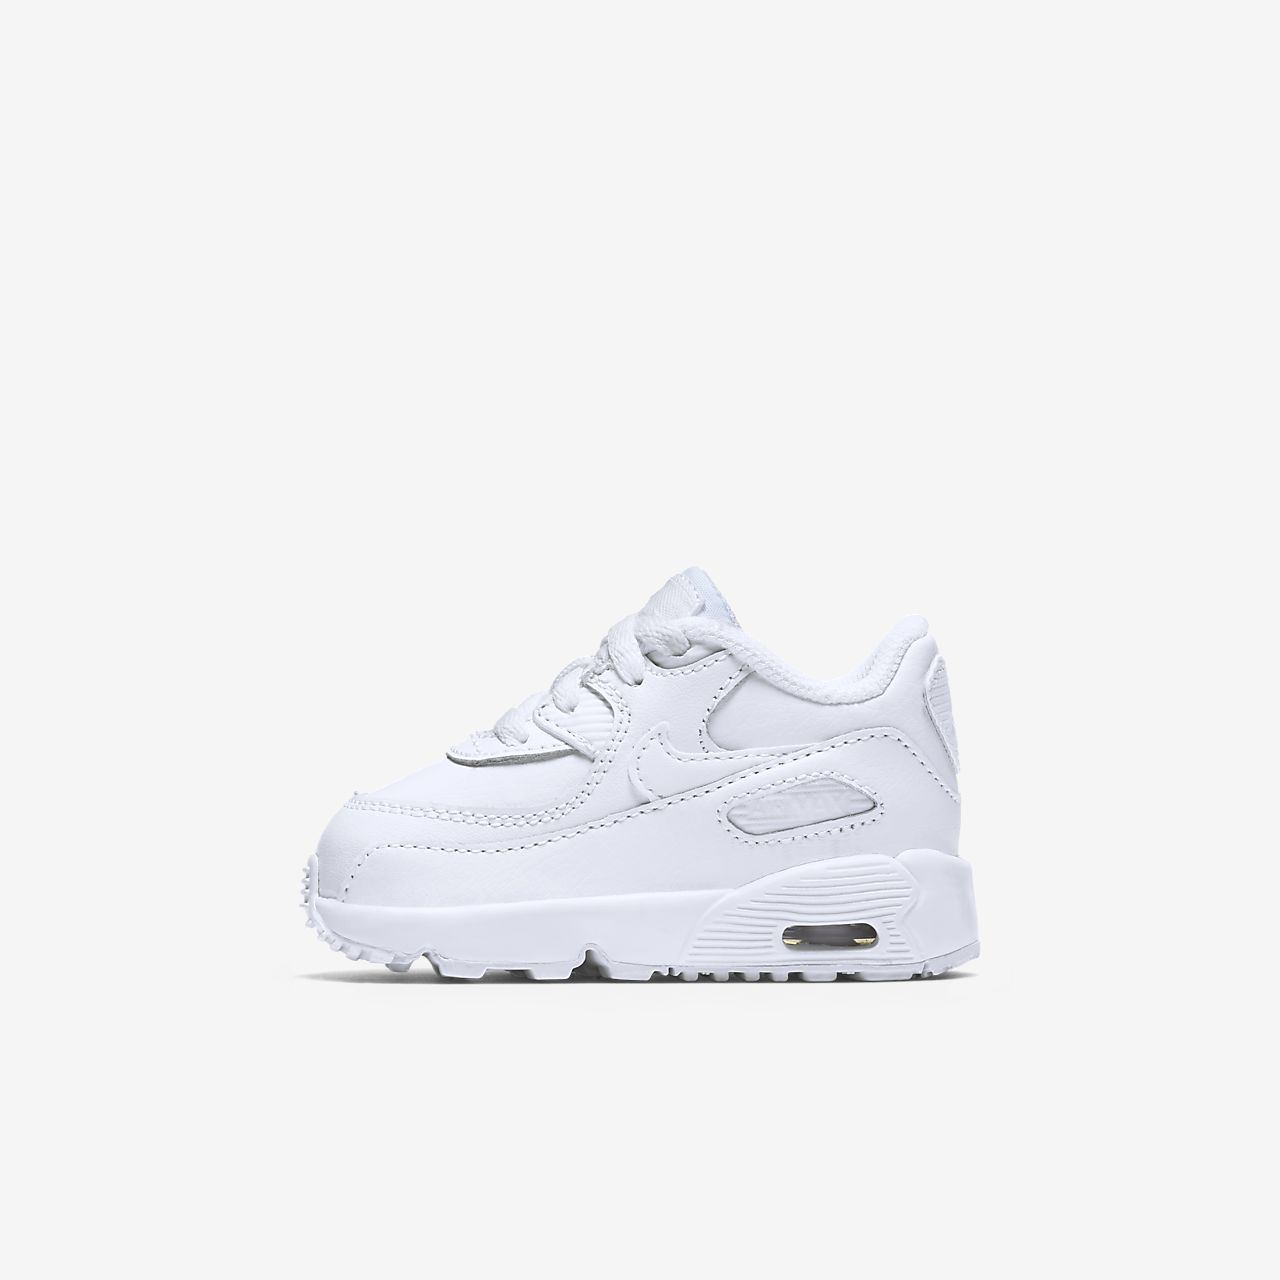 Nike Air Max 90 Leather Schoen baby'speuters